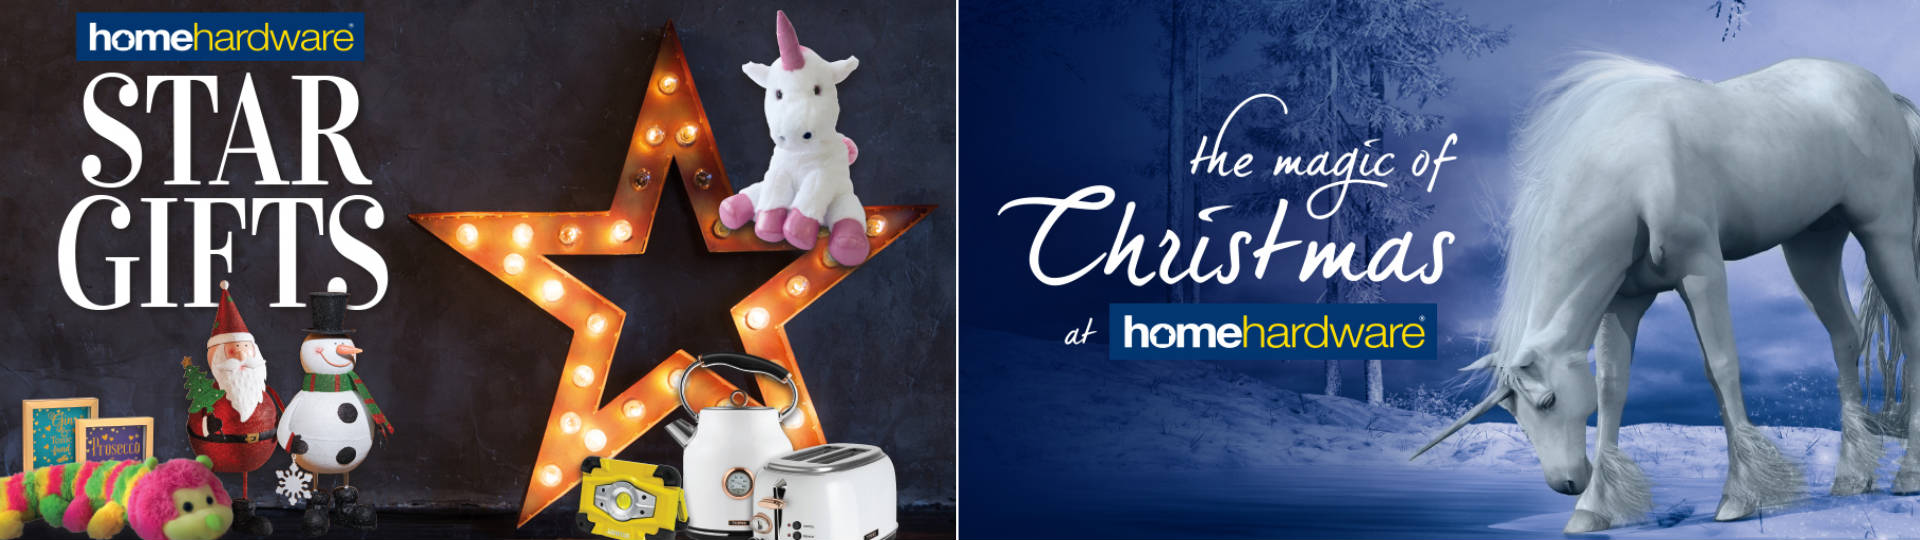 Home Hardware Christmas Gifts 2018